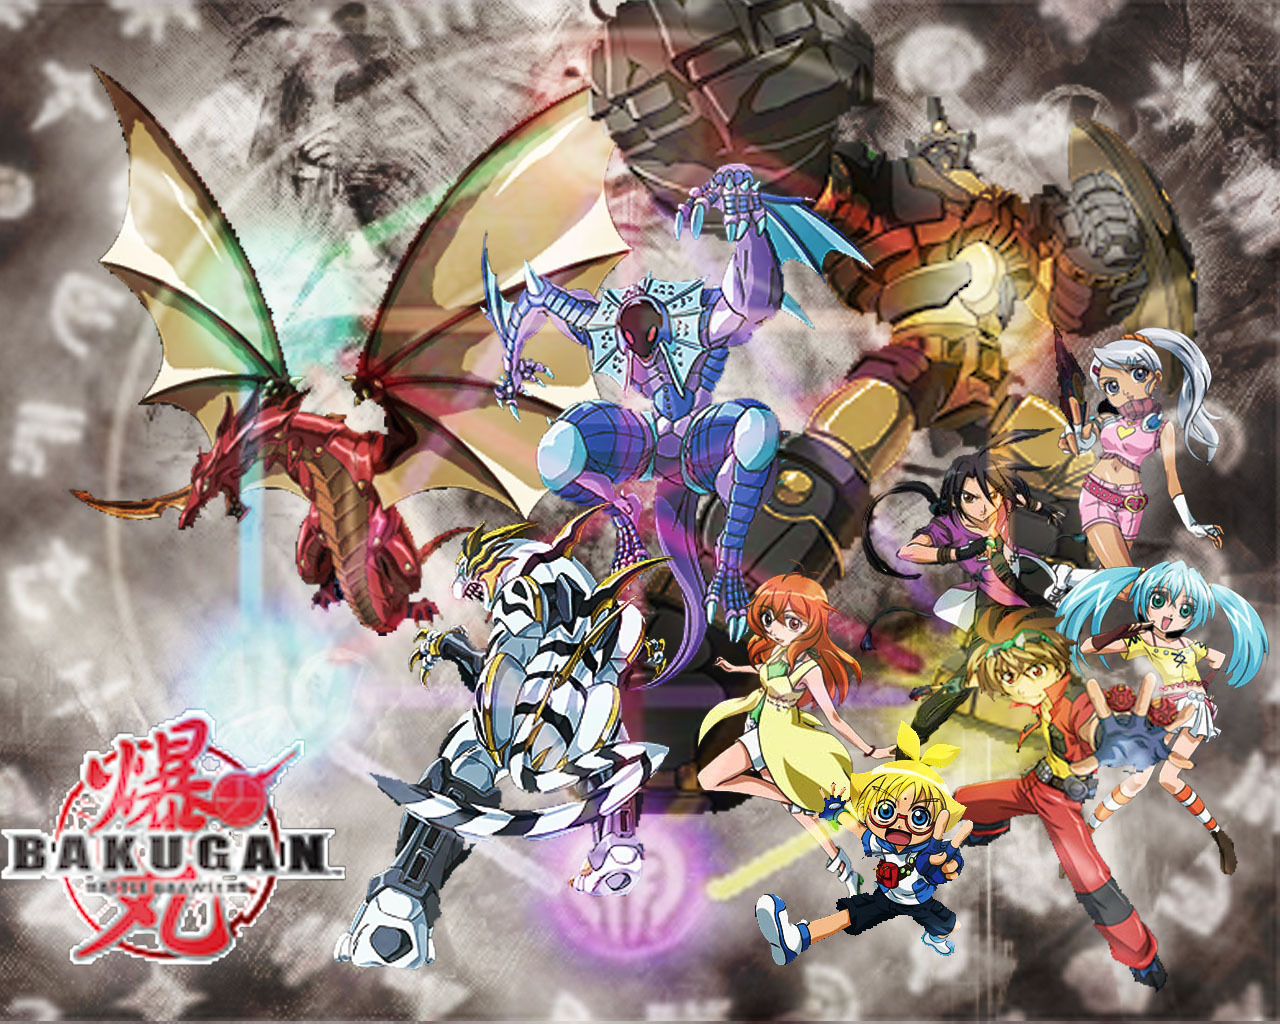 Bakugan Runo and Julie http://ajilbab.com/bakugan/bakugan-runo-and-julie-submited-images-pic-fly.htm